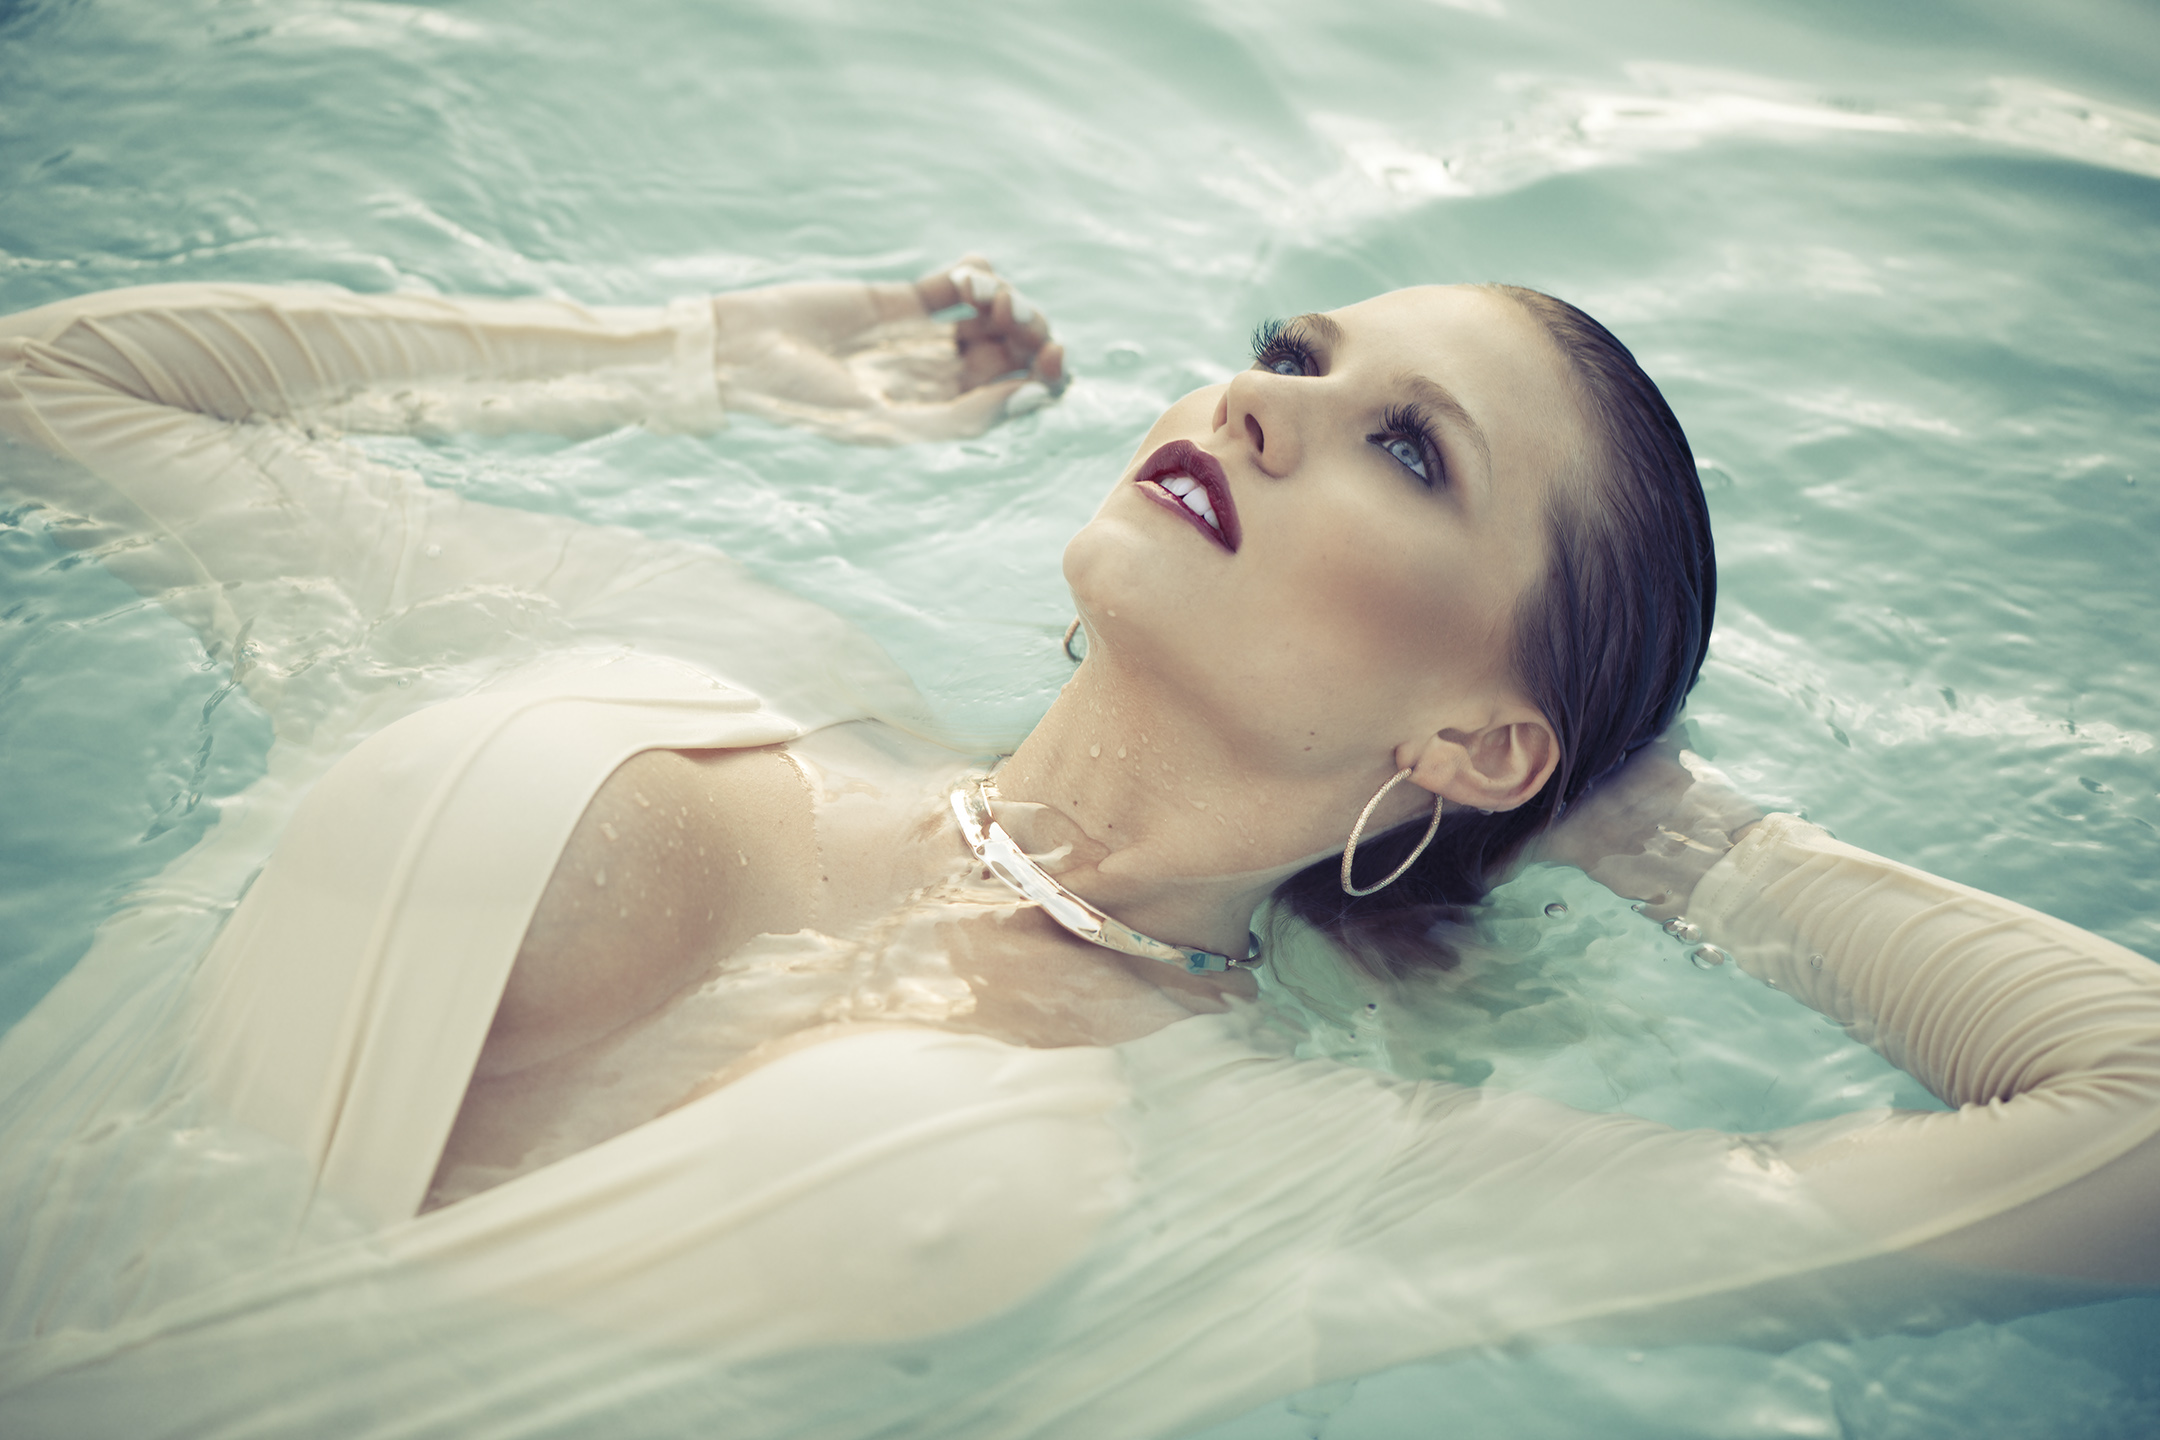 Matthew Roharik Editorial Fashion & Beauty Photographer Los Angeles : LA Photographer